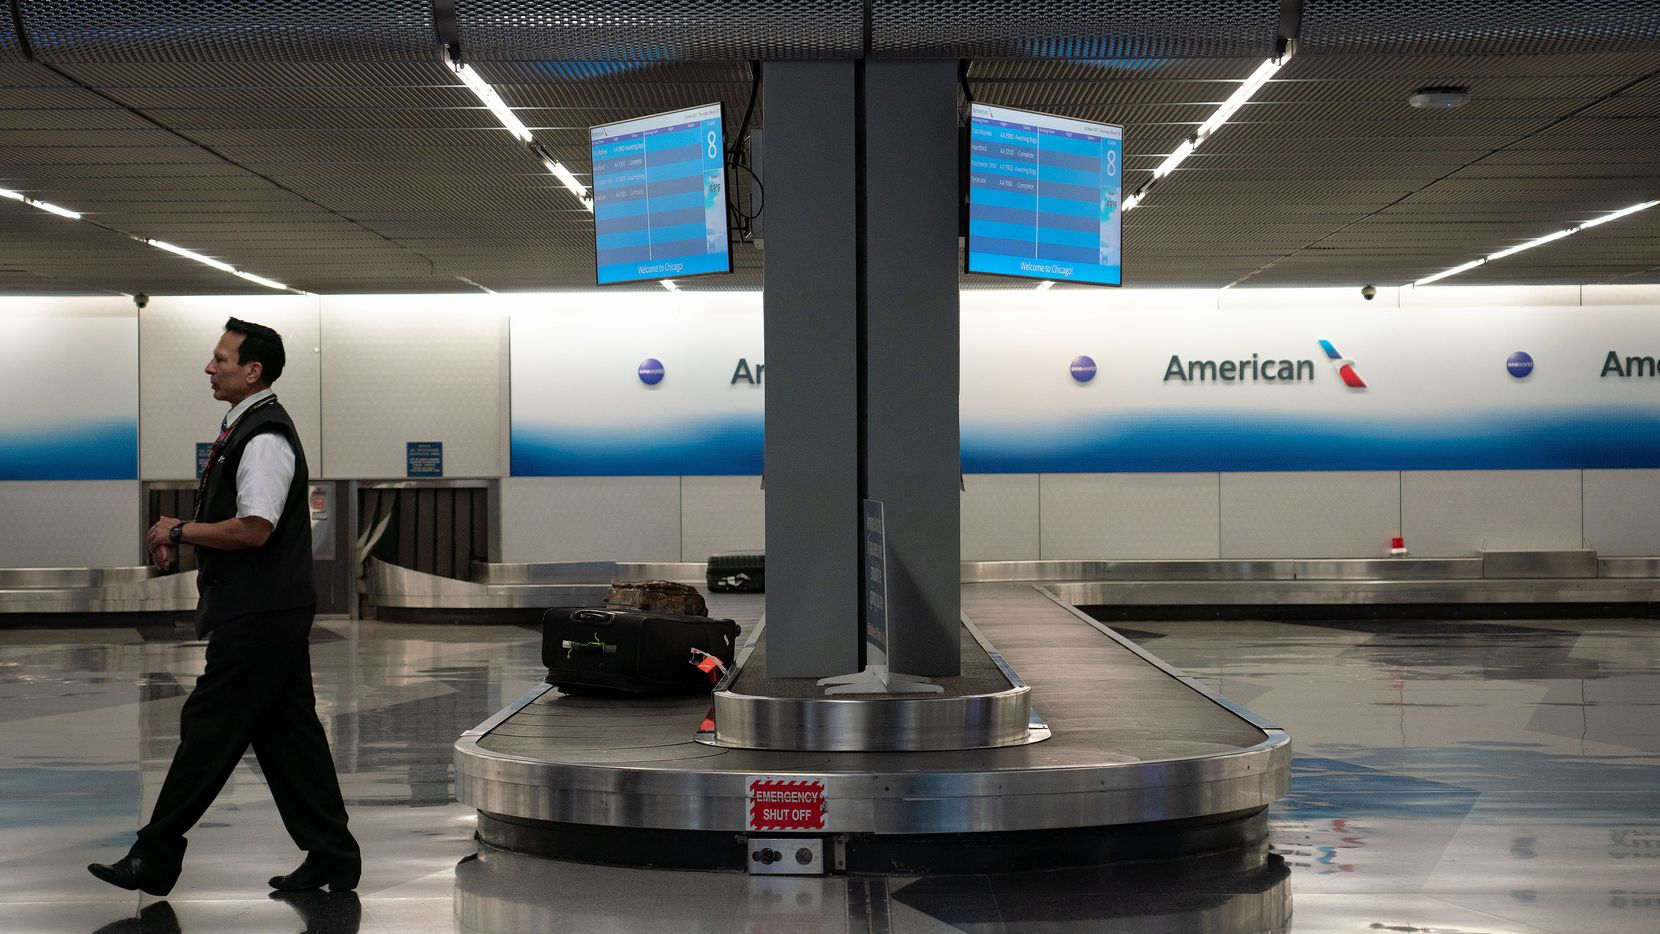 Starting Tuesday, American will operate just 13 flights a day combined out of John F. Kennedy International Airport, LaGuardia Airport and Newark Liberty International from now through May 6.(E. Jason Wambsgans/Chicago Tribune/TNS)